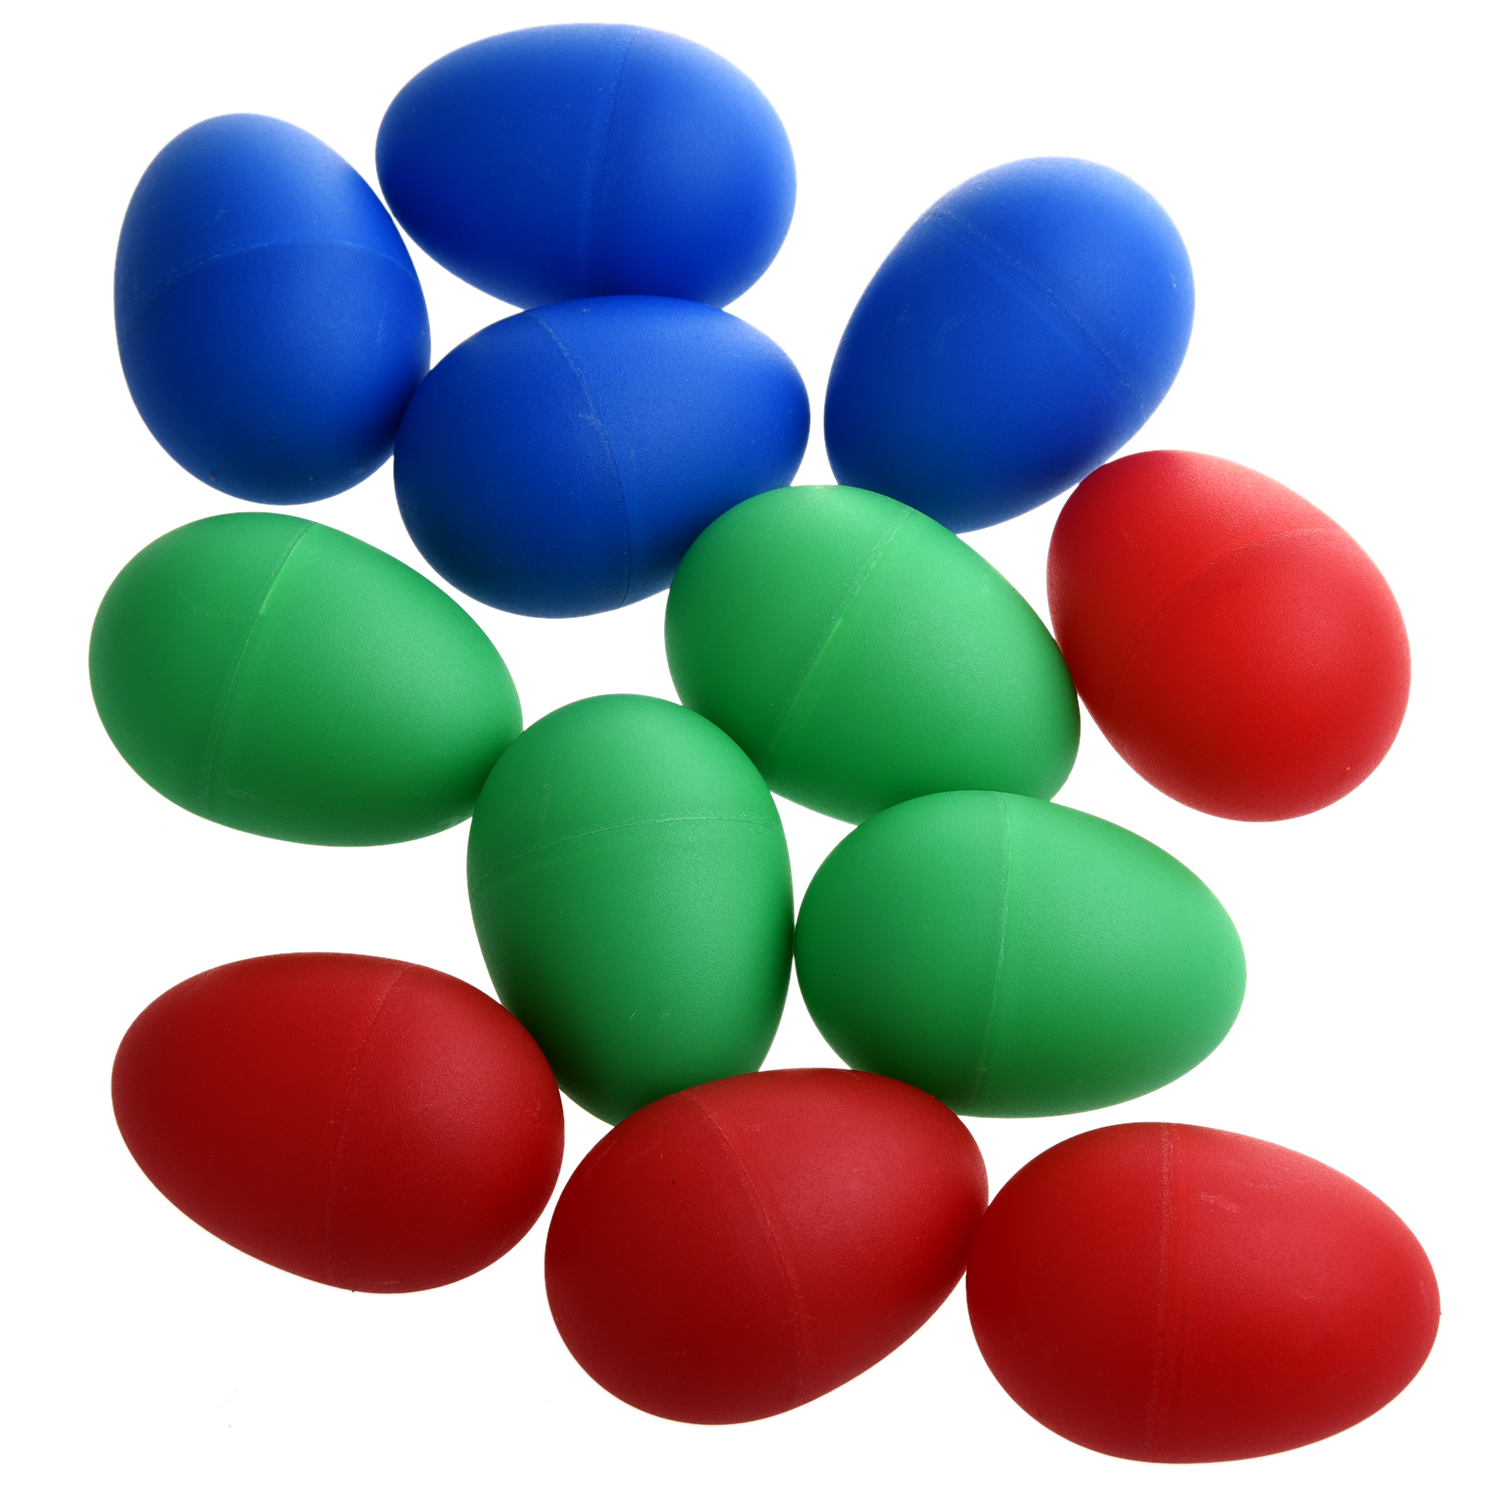 12 X Educational Plastic Drums Musical Egg Maracas Shakers